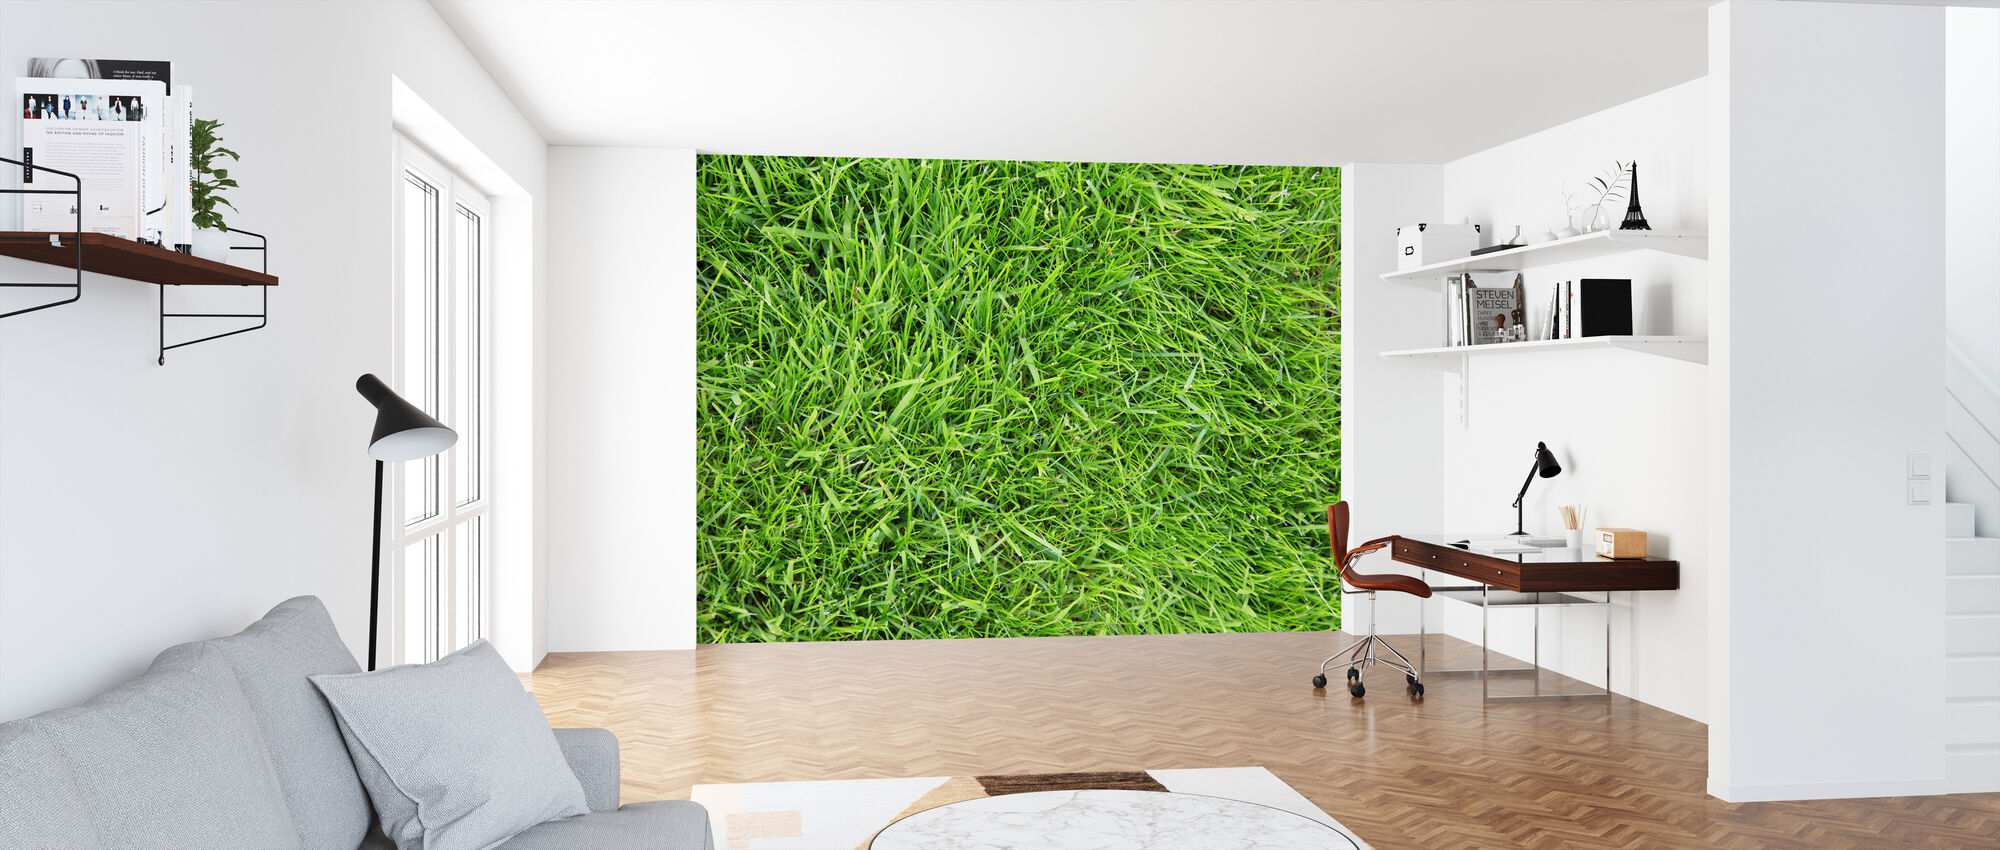 Fresh Green Grass - Wallpaper - Office